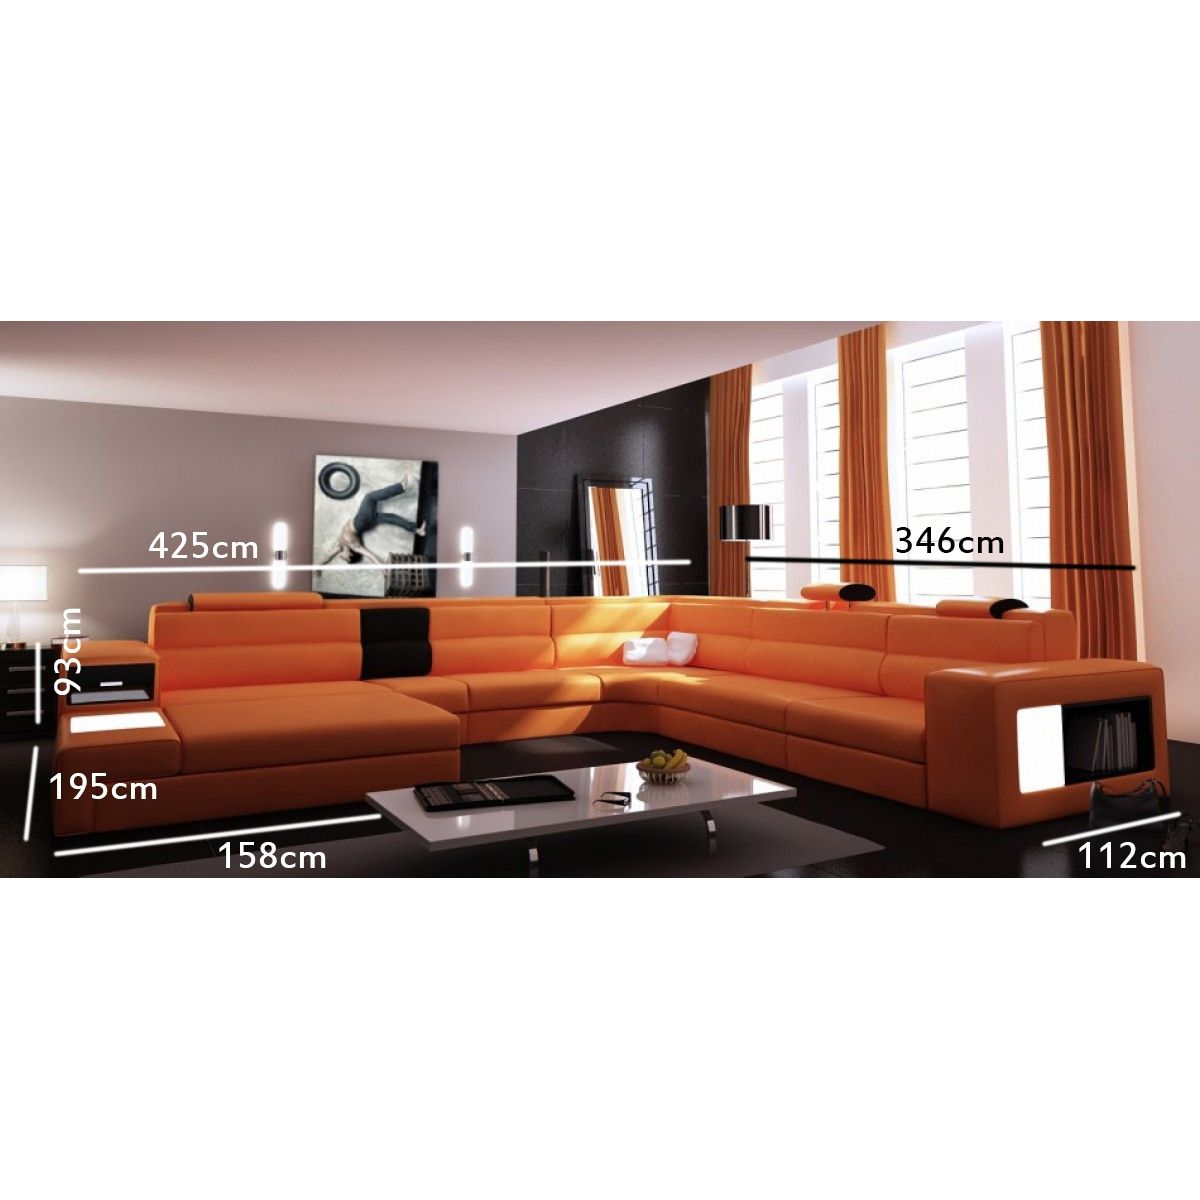 deco in paris canape panoramique angle gauche orange venise can pano anglegauche pu venise orange. Black Bedroom Furniture Sets. Home Design Ideas